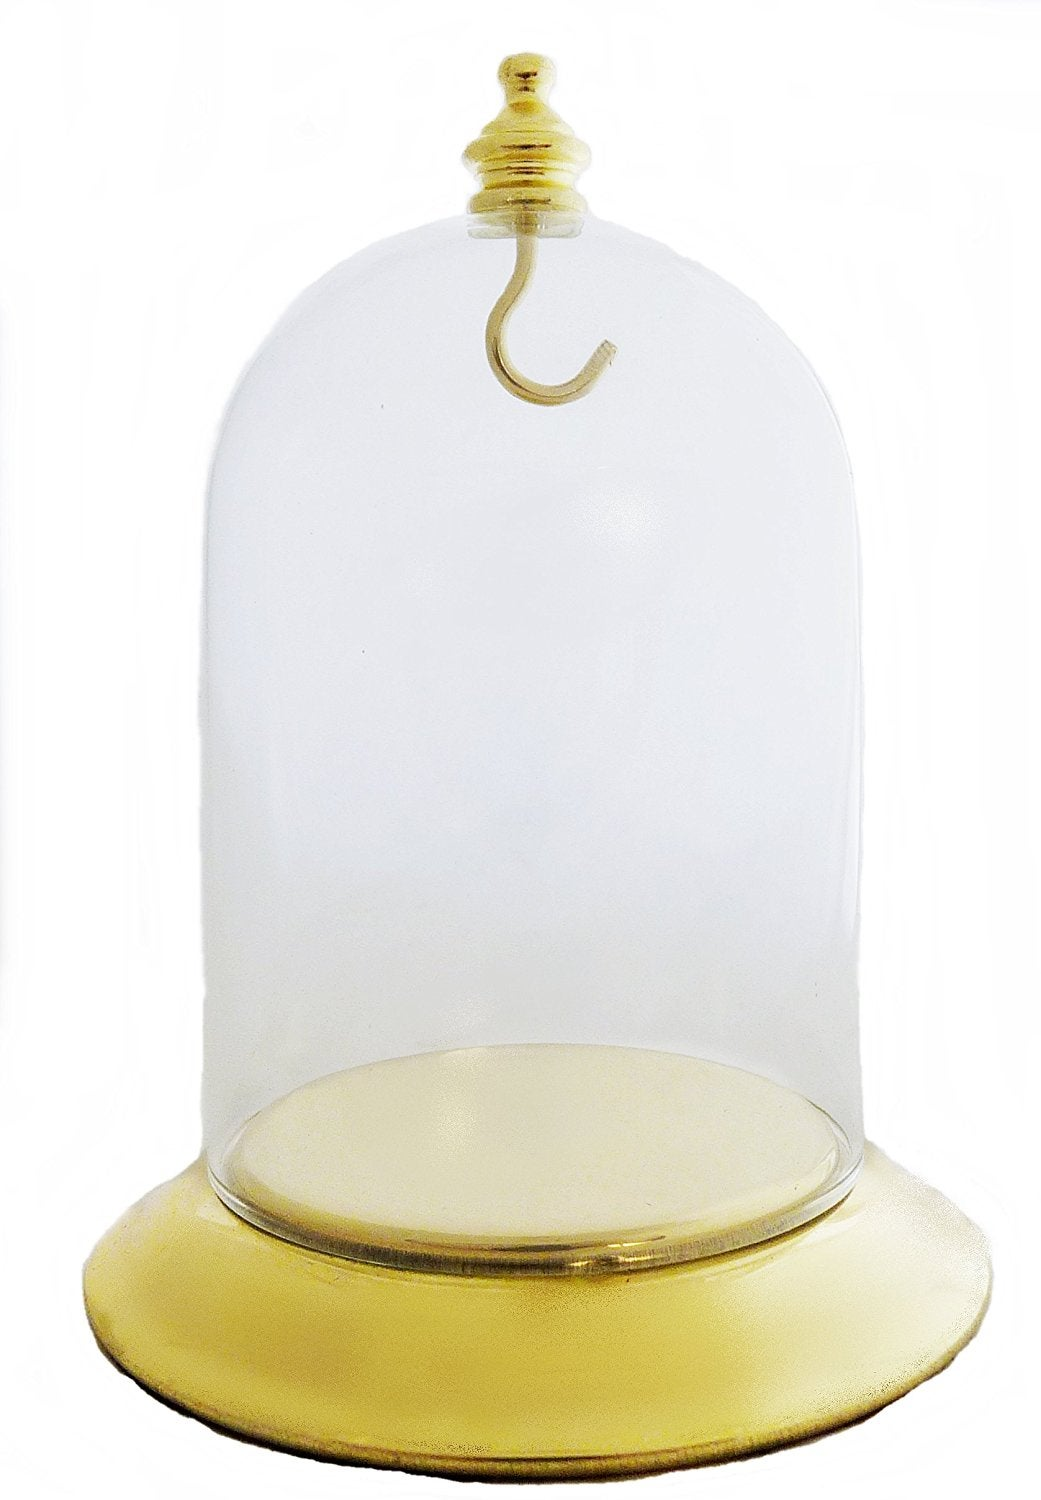 Image of Dueber Pocket Watch Glass Display Dome with Gold Knob & Hook, Gold Base 3″x4 DBR31BRH